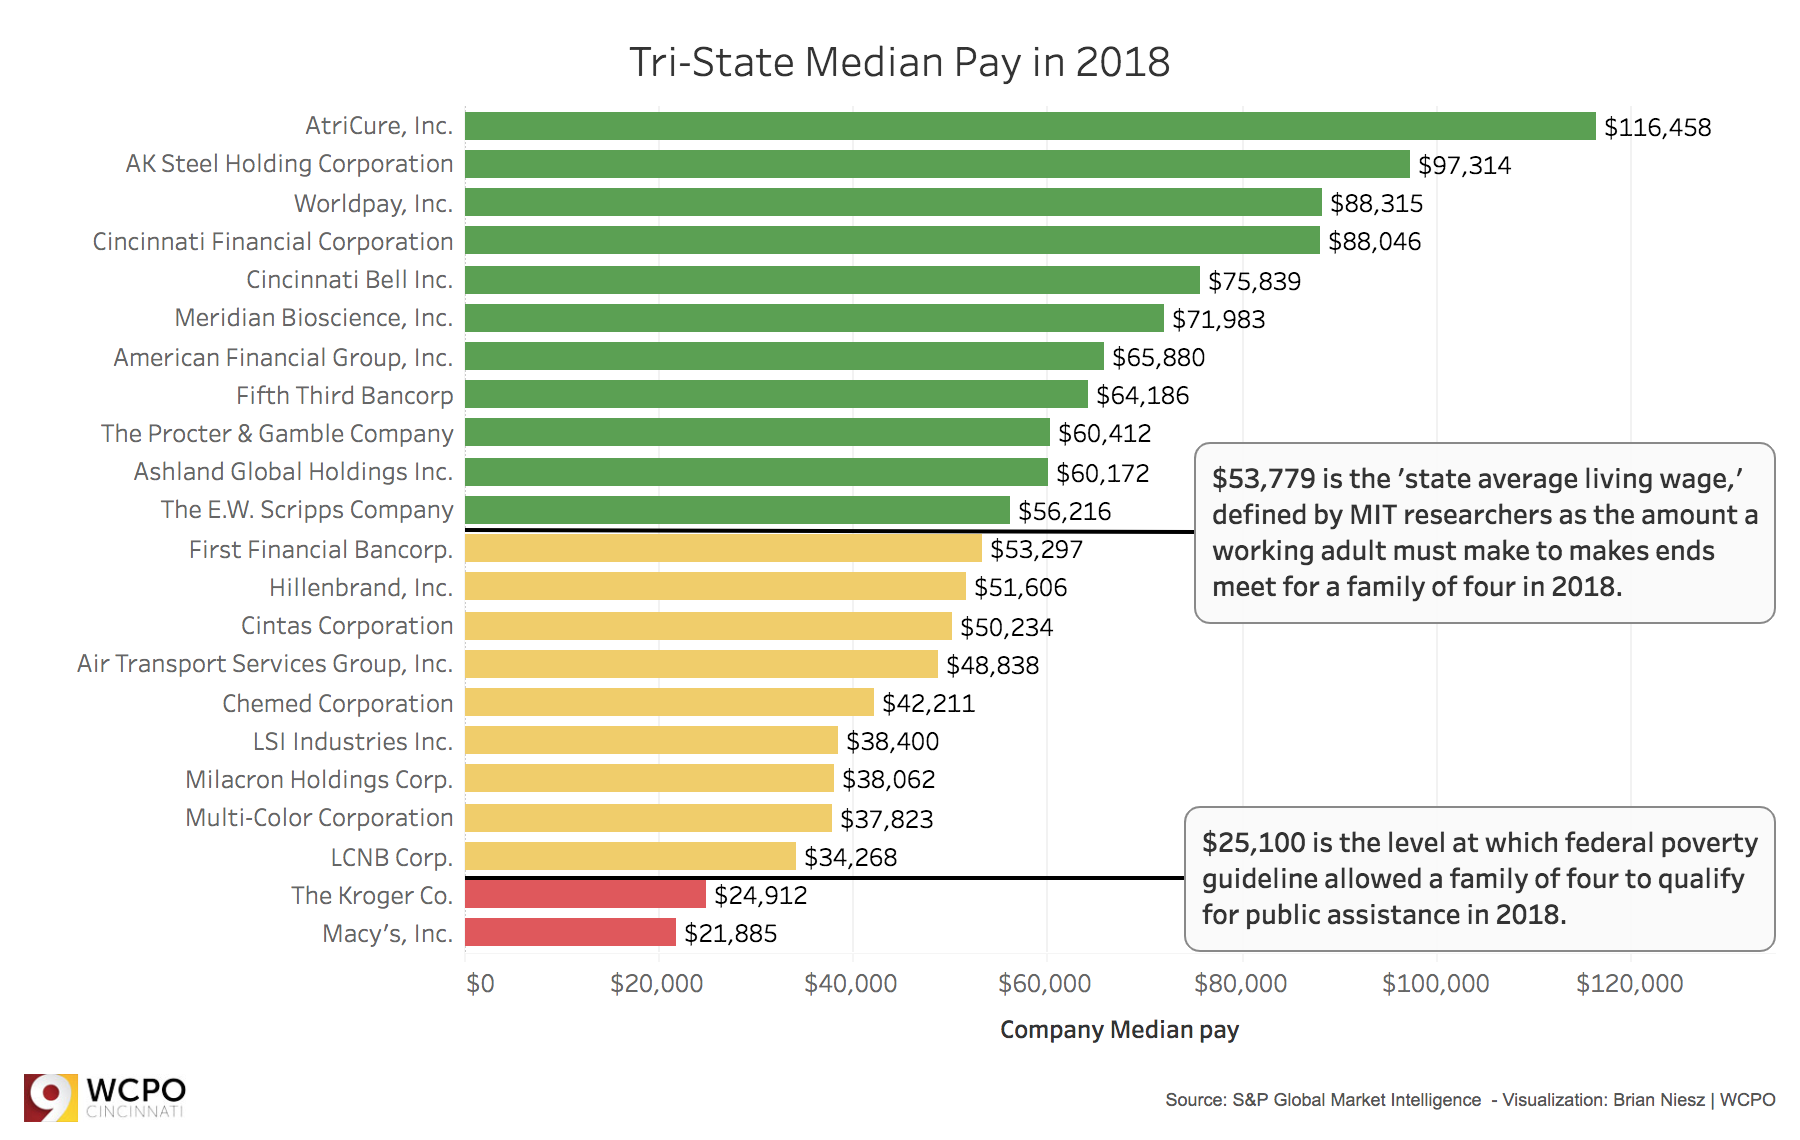 Executive Pay 2019: Could your family get by on 'median pay?'